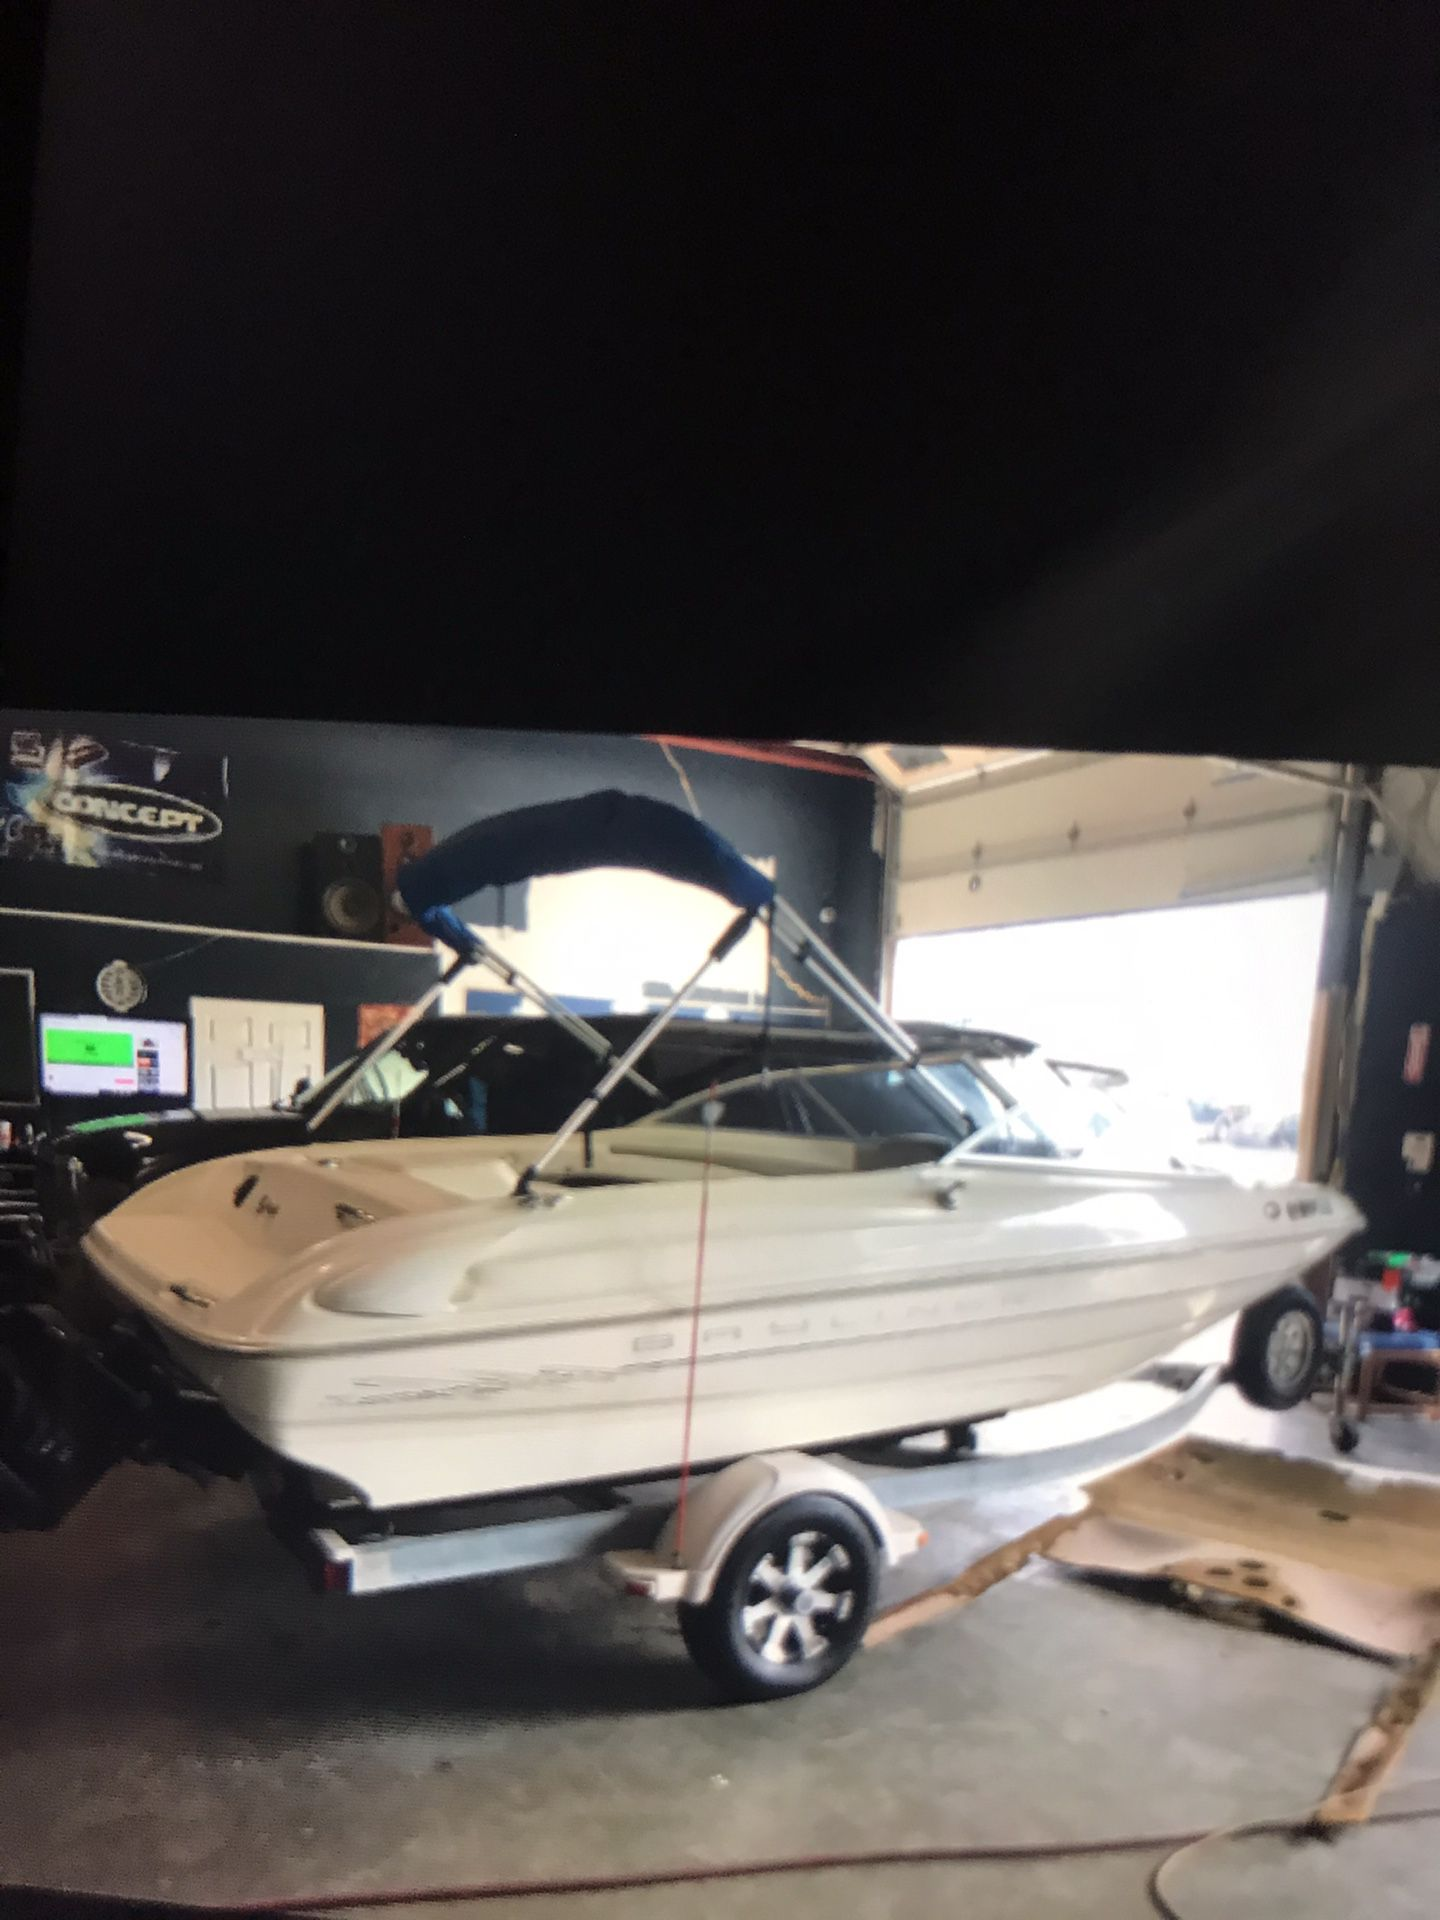 Boat 1999 Bay liner really clean boat Garage kept